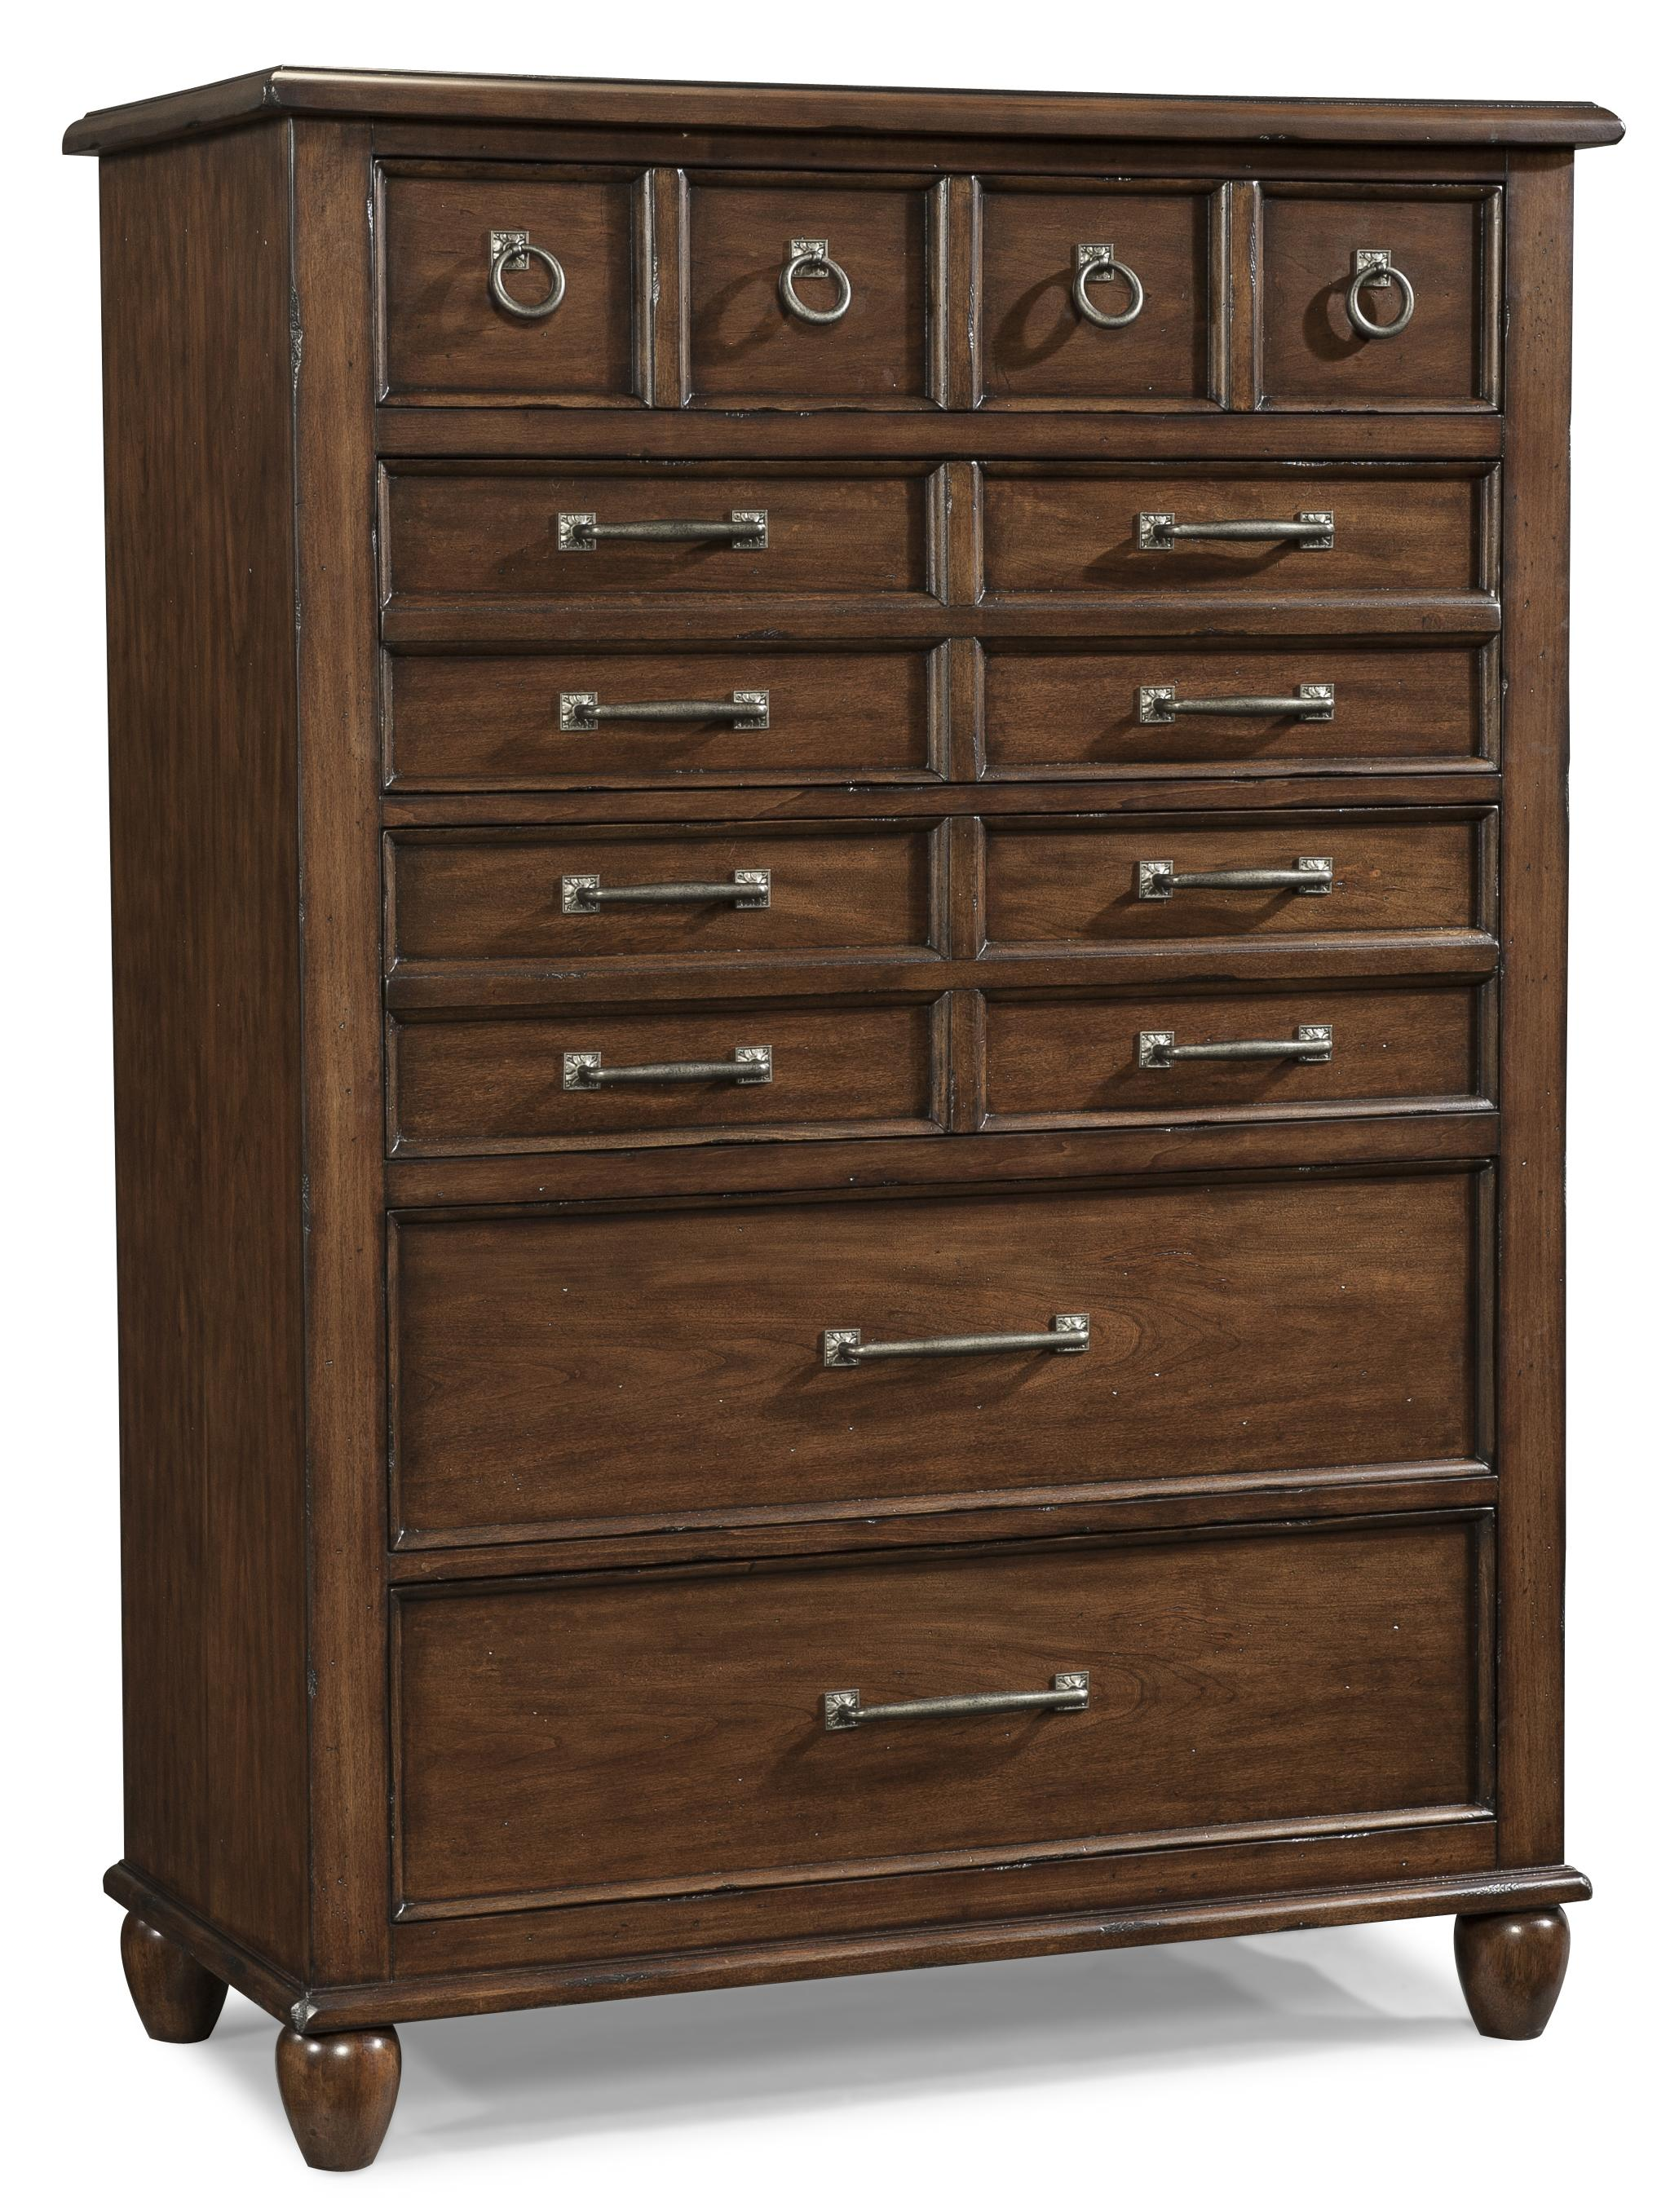 Easton Collection Blue Ridge Cherry Drawer Chest - Item Number: 426-681 CHEST